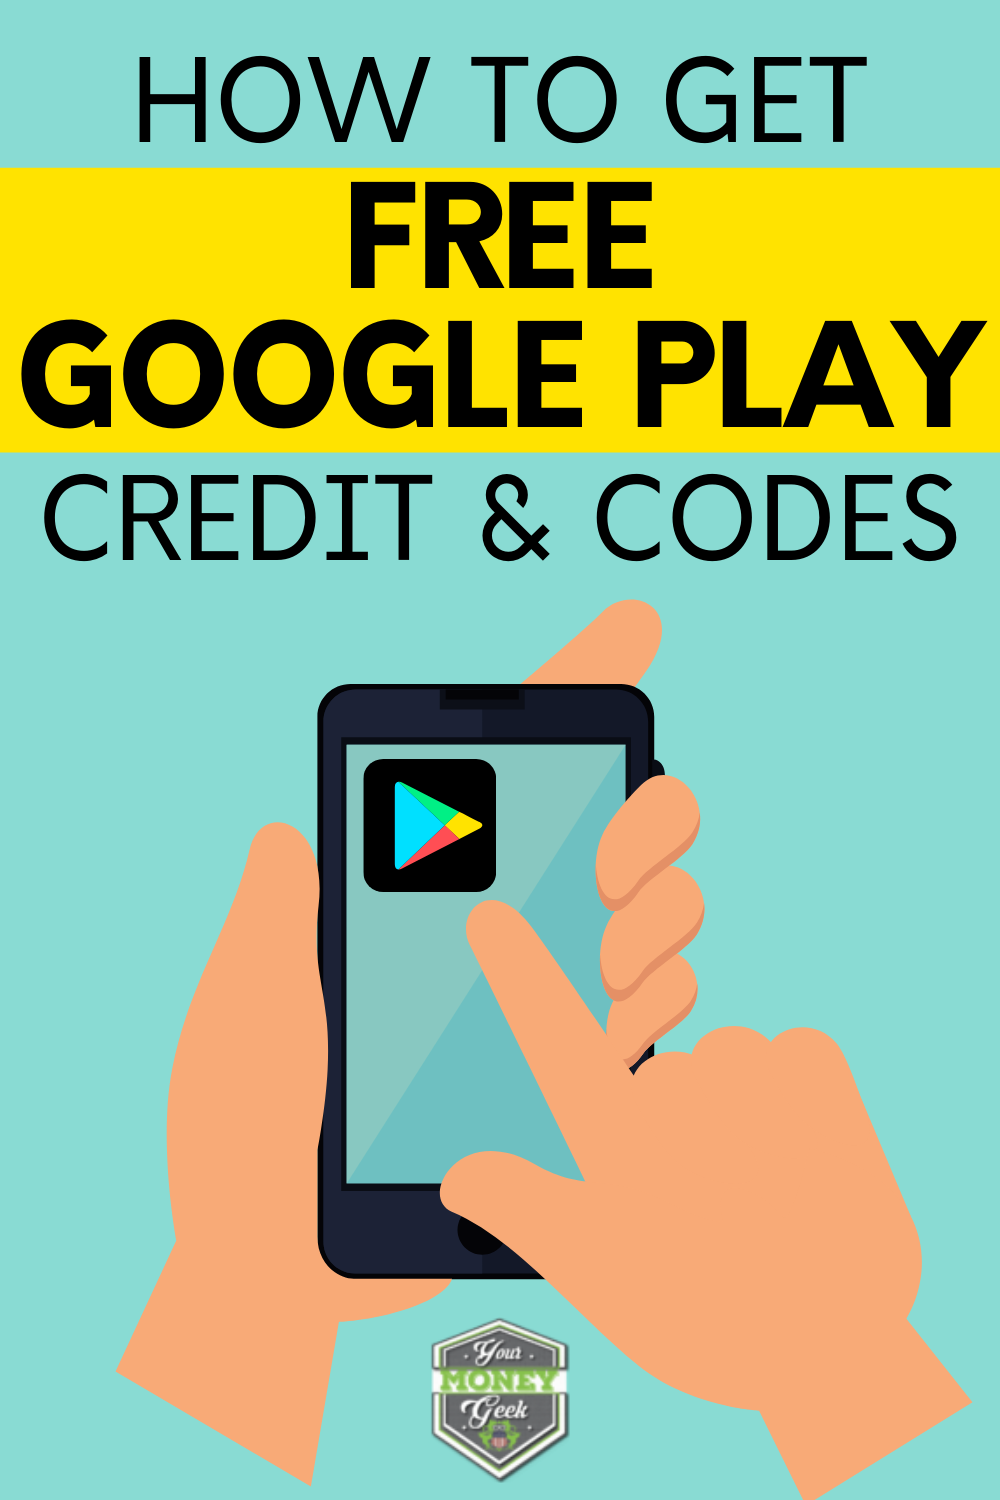 How To Get Free Google Play Credit And Codes Legally Google Play Personal Finance Blogs Free Gift Card Generator